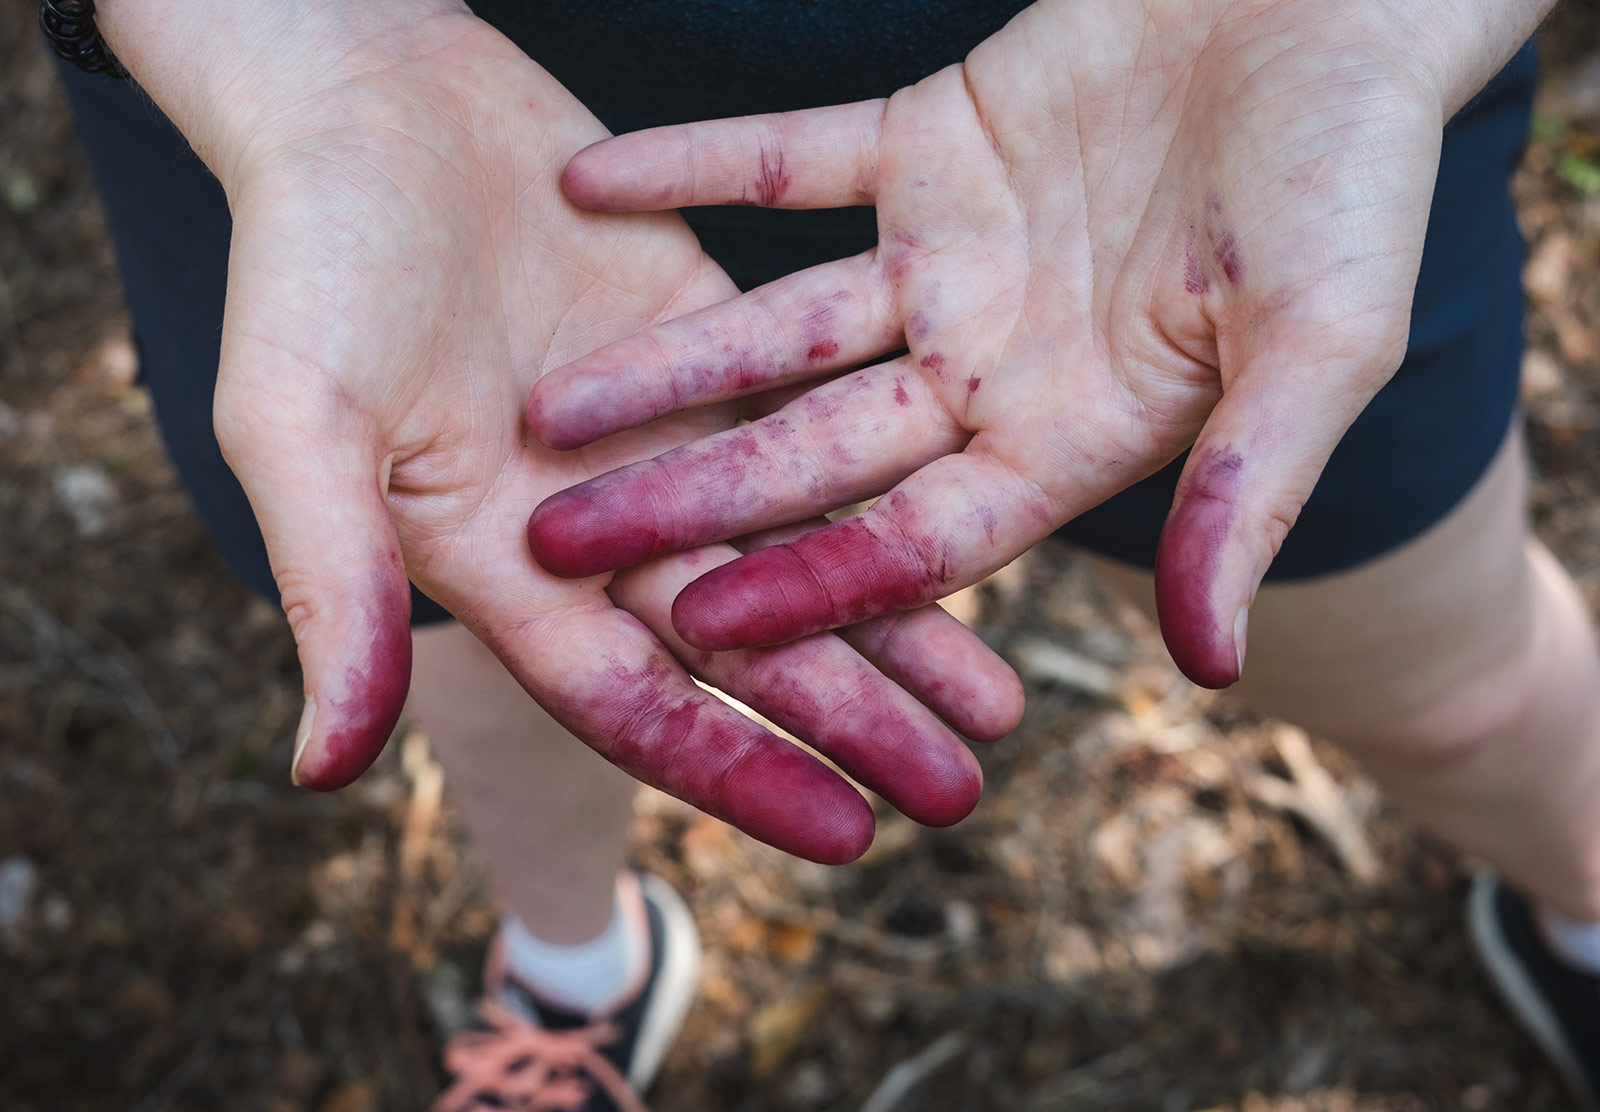 Fingers stained with purple juice